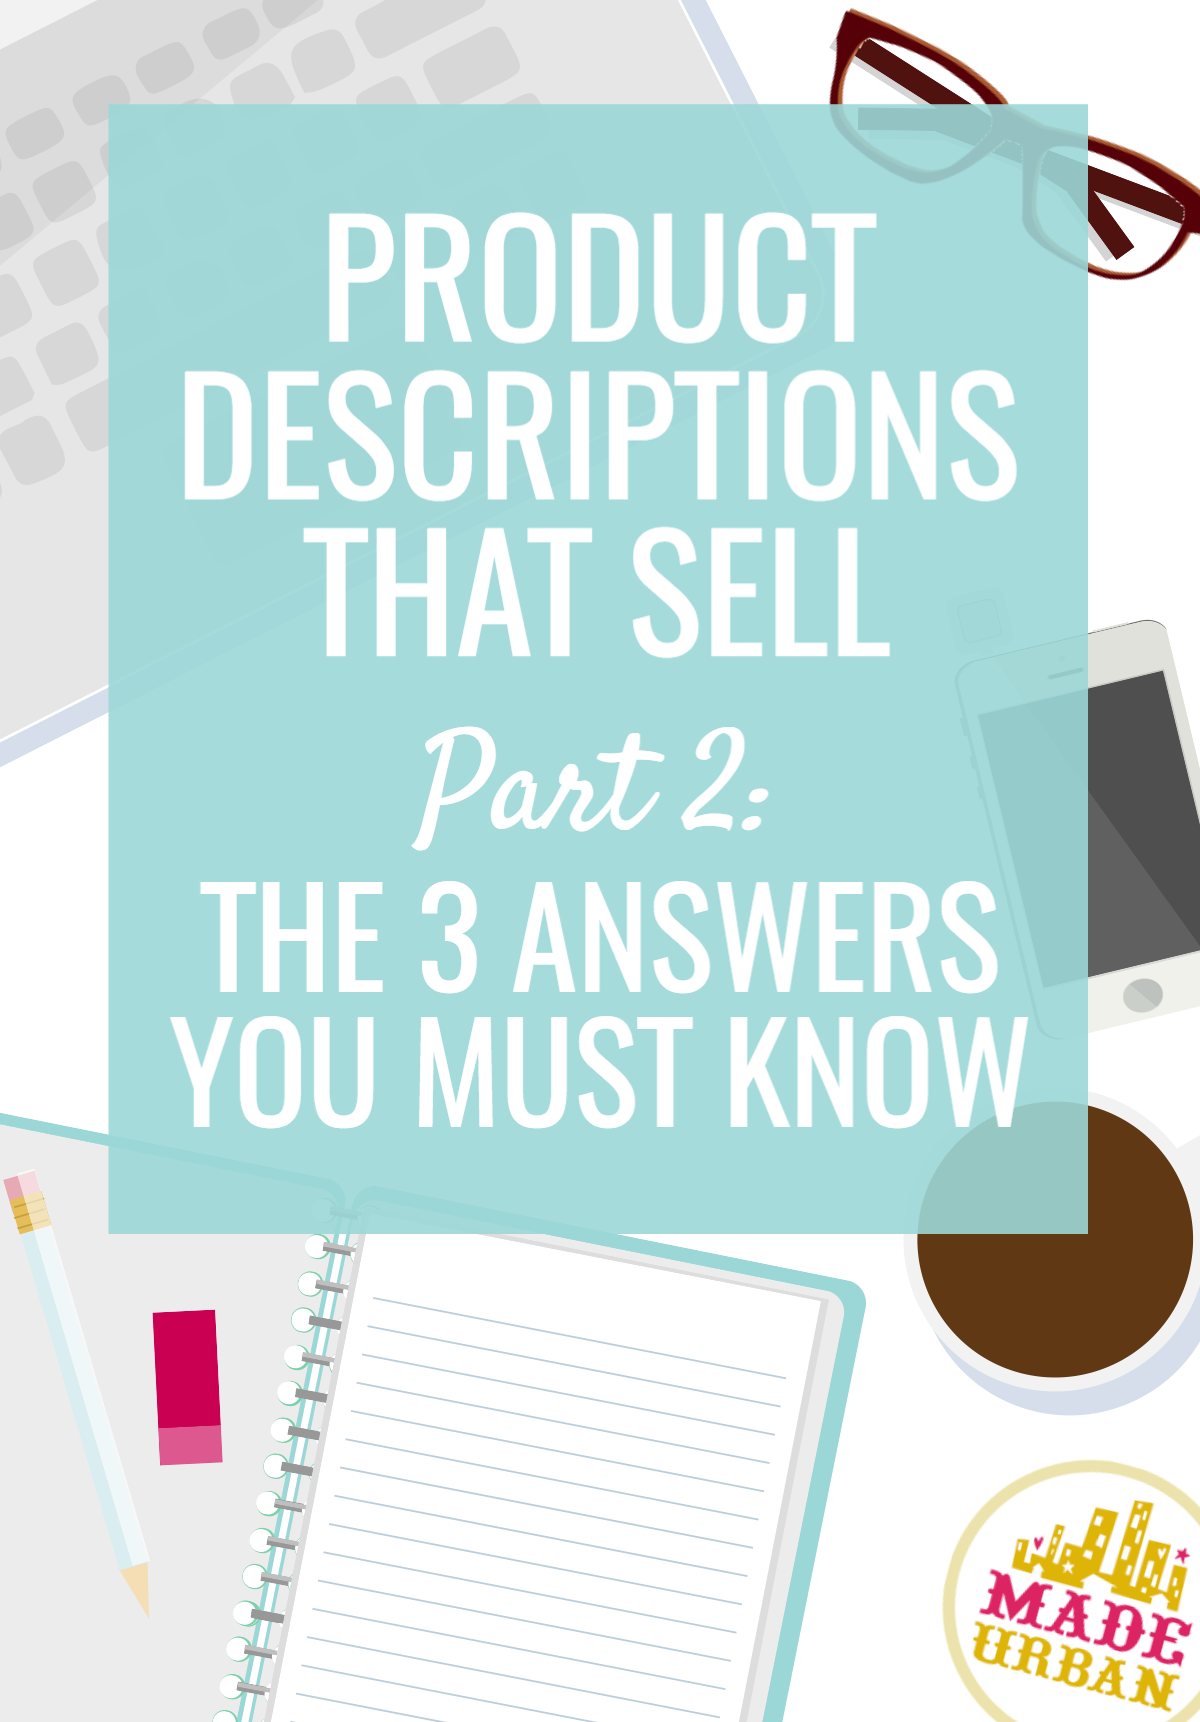 Before you start writing descriptions for handmade products, make sure you can clearly answer these 3 questions. Otherwise they'll lack direction and impact